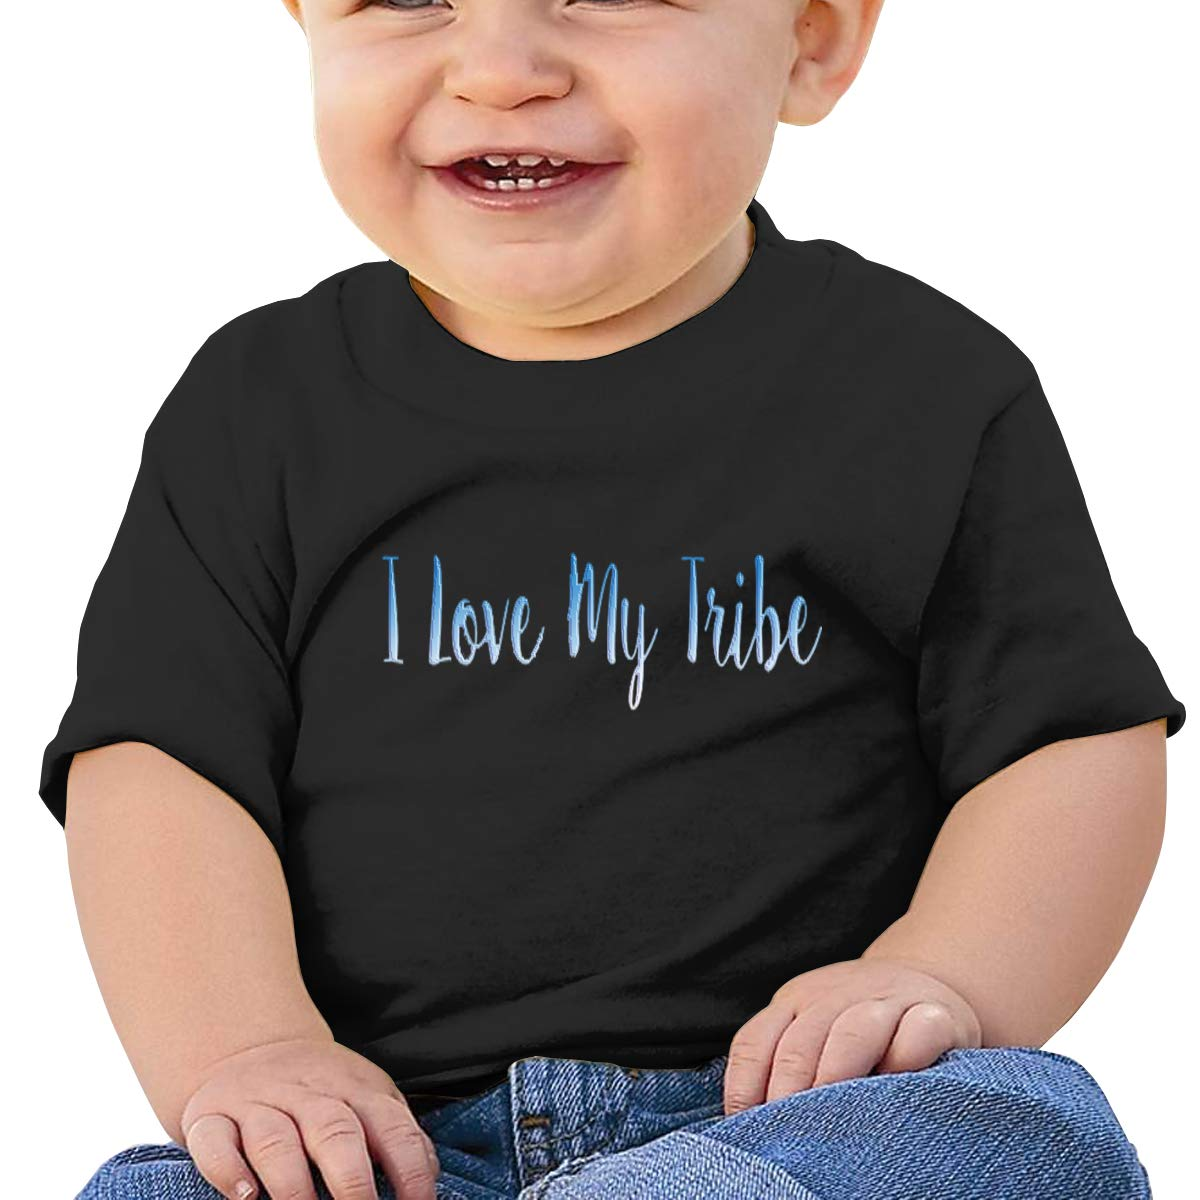 I Love My Tribe Toddler Short-Sleeve Tee for Boy Girl Infant Kids T-Shirt On Newborn 6-18 Months